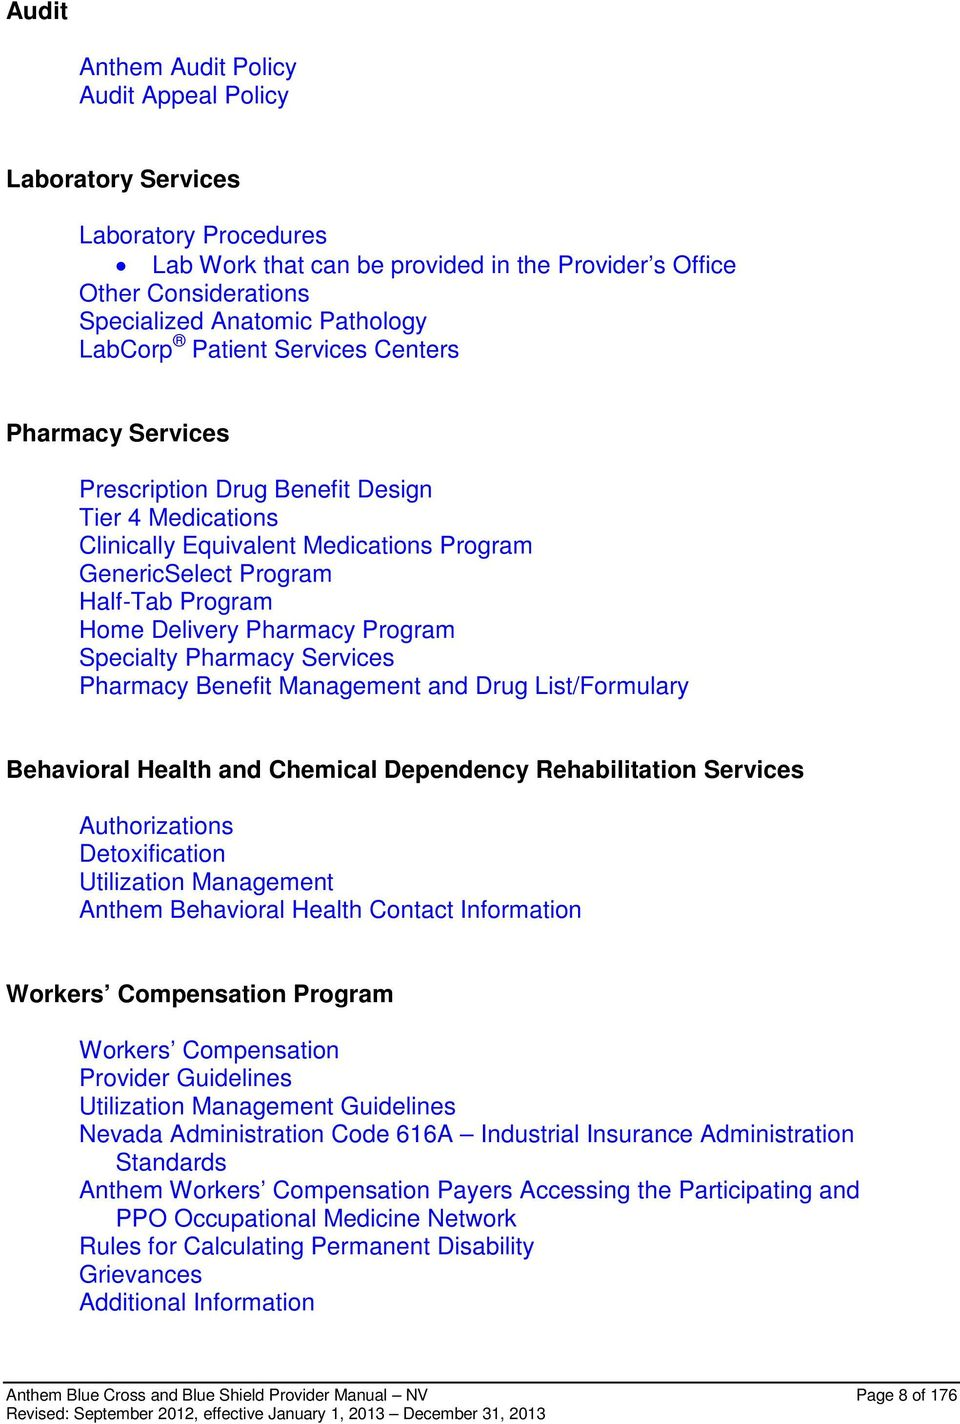 Anthem Blue Cross And Blue Shield Provider And Facility Manual Pdf